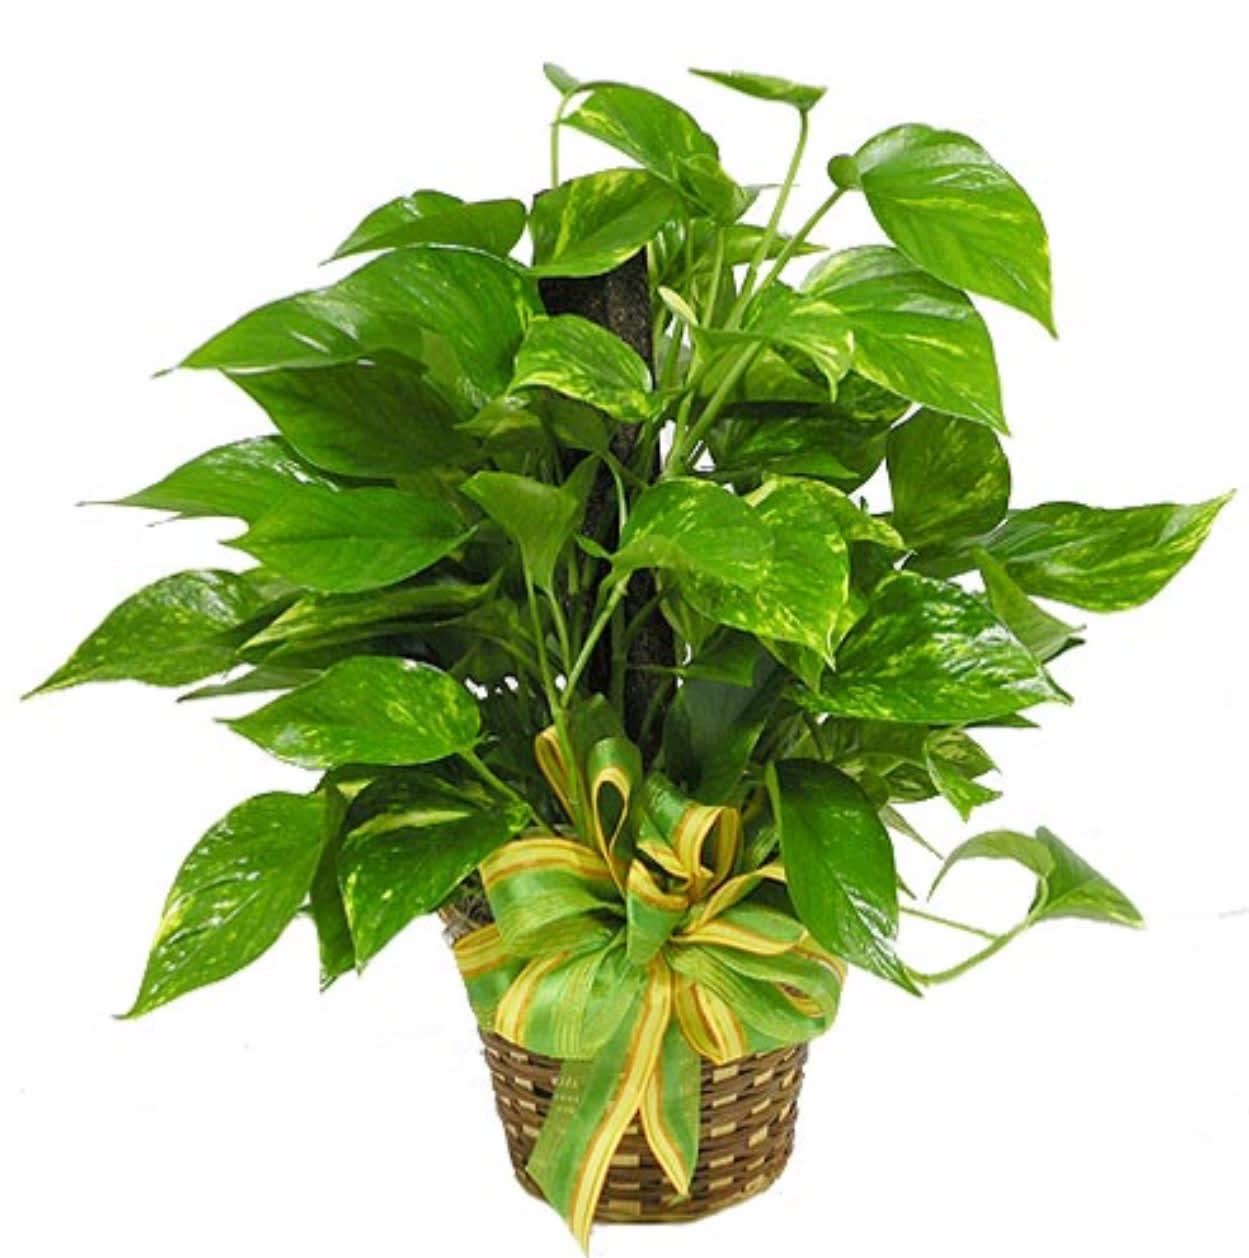 Ivy Pole Plant in Lake Worth, TX | Lake Worth Florist Green Vine Indoor House Plant Html on flowering vine house plants, decorative vine house plants, indoor glass plants, green vine house plants,